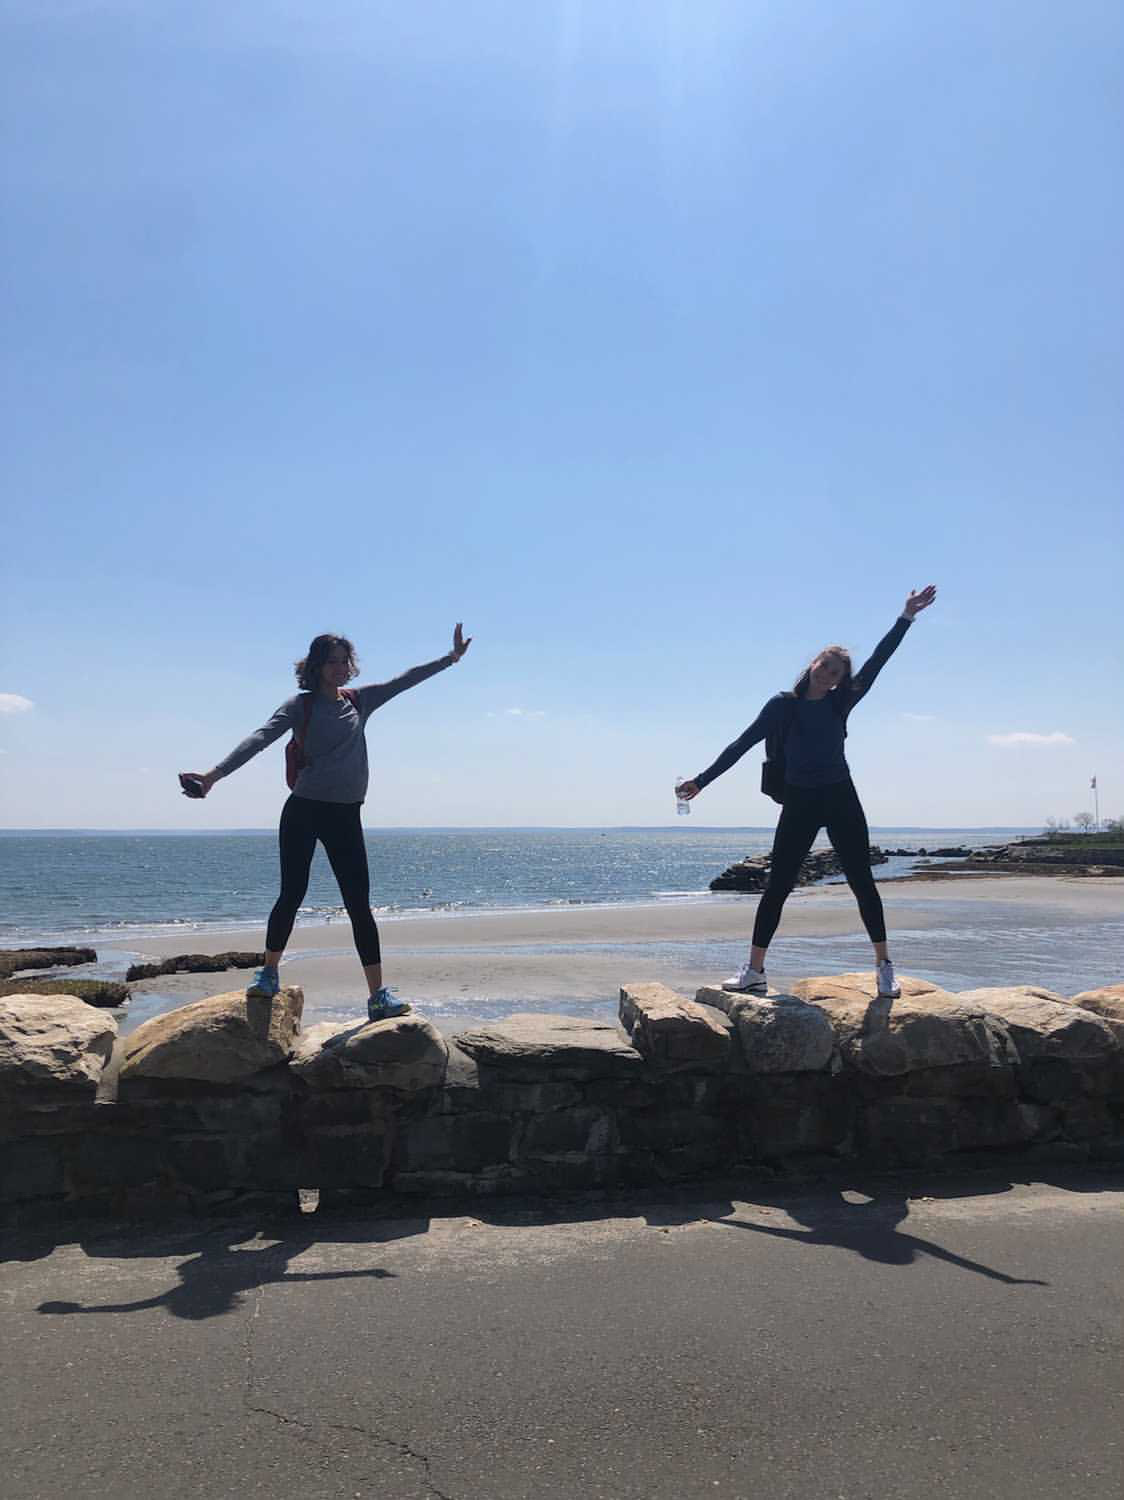 Heidi Jacobsen '24 and Bella Subramaniam at the beach in Greenwich, Conn., as part of their marathon walk to raise money for their local hospital.